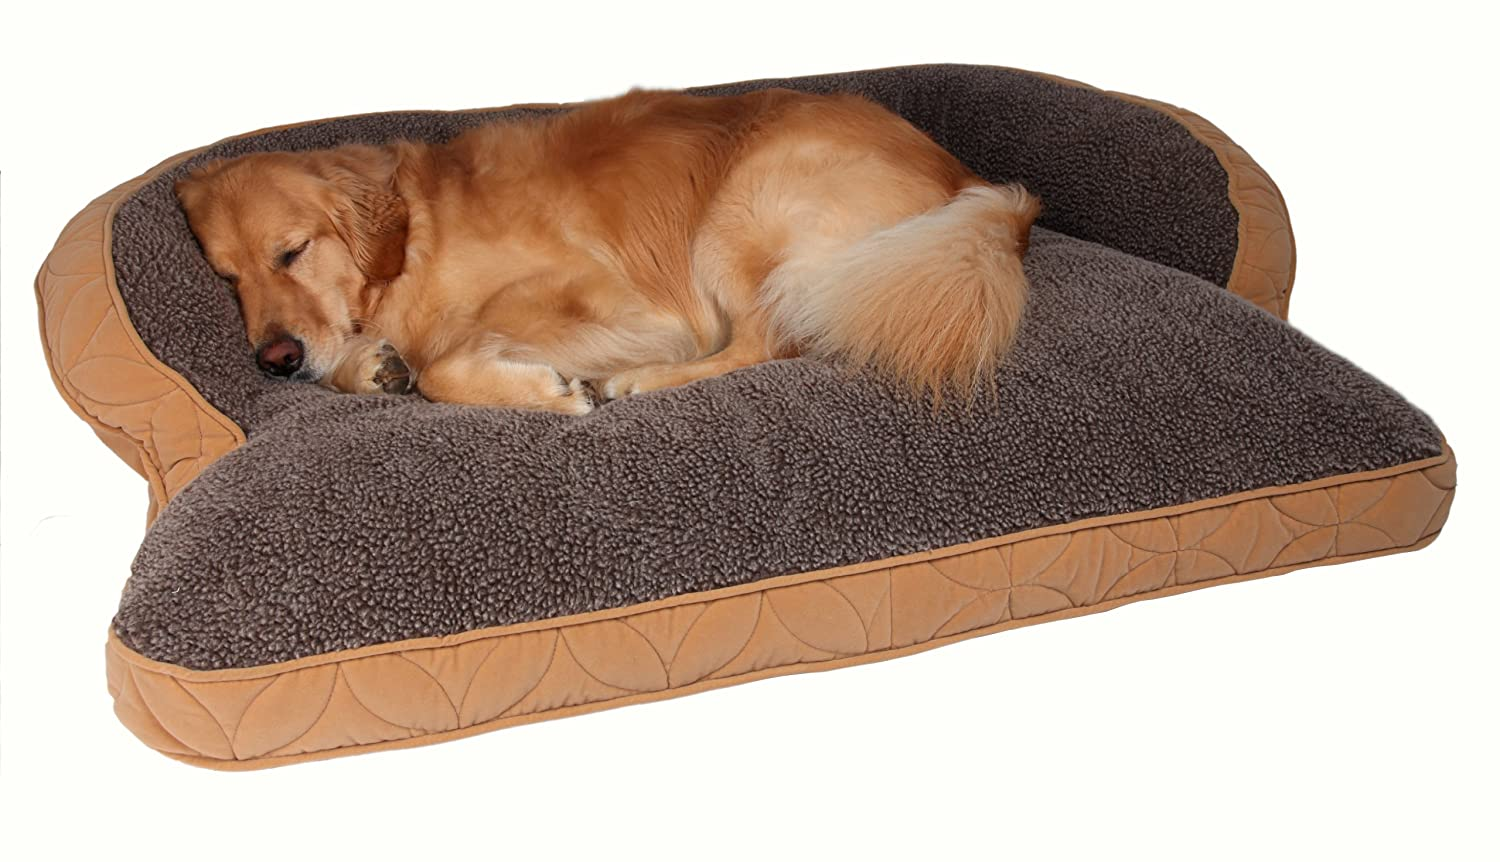 travel pet for products k amazon com supplies dogs suv beds big clearance x gray large h bed dp dog